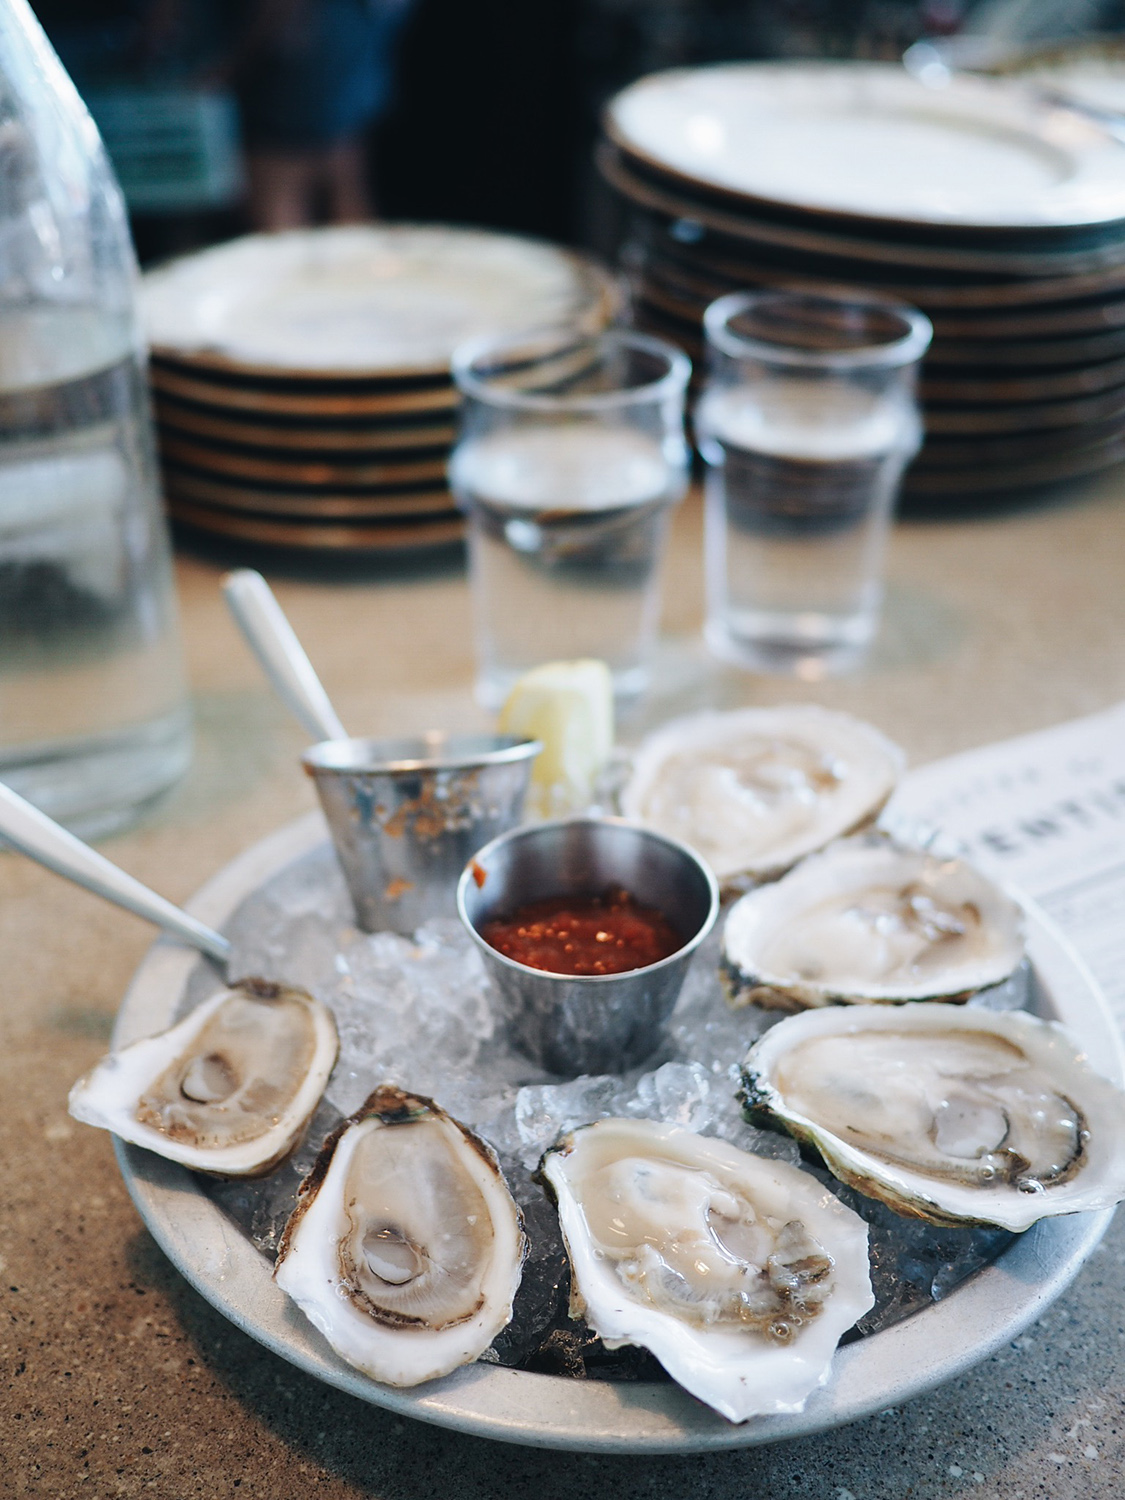 {The freshest oysters I've ever had. Literally tasted like the sea.}